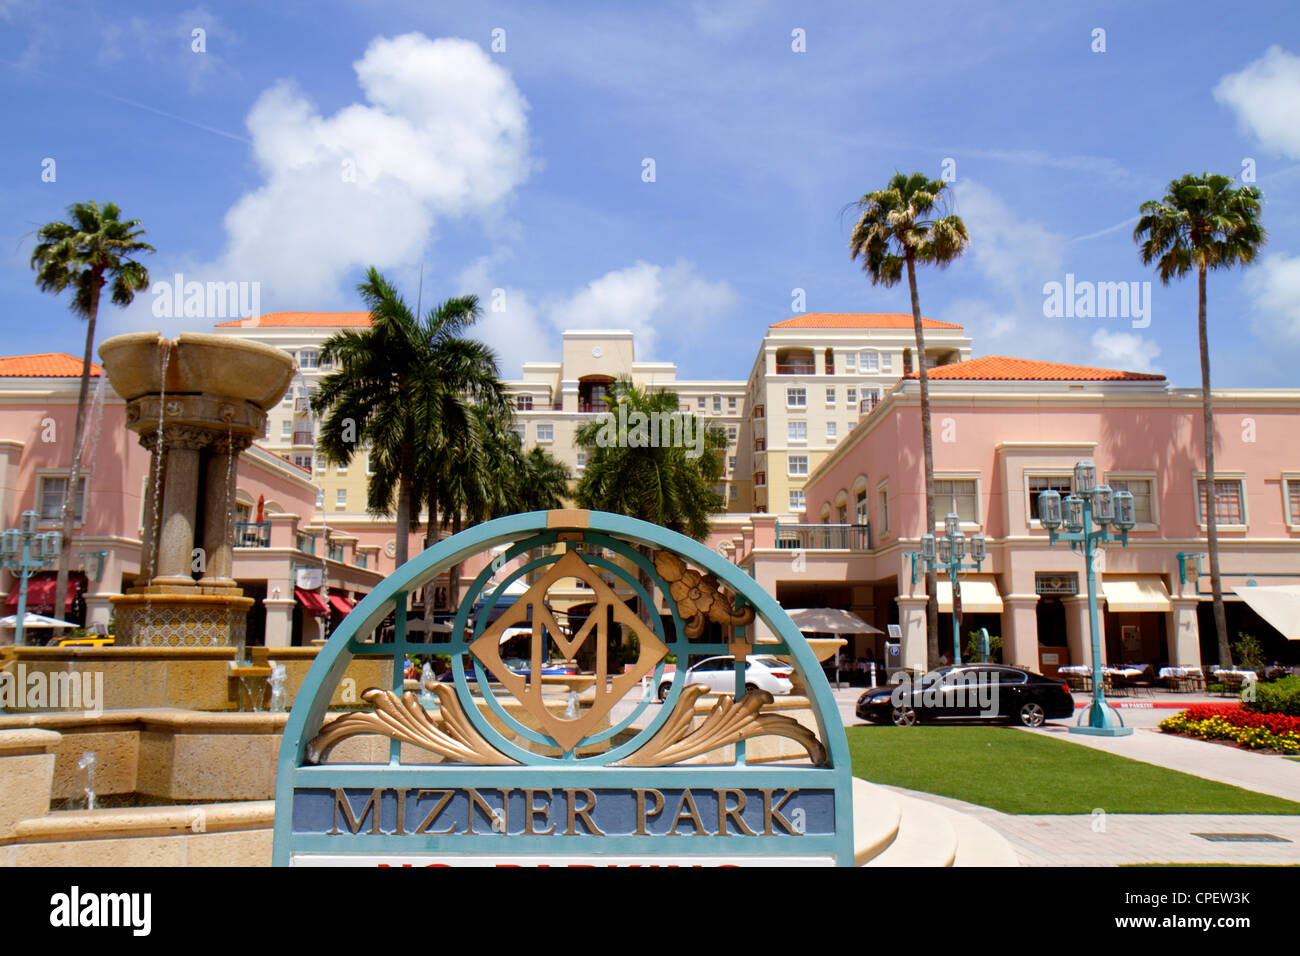 Boca Raton Shopping >> Florida Boca Raton Shopping Shopper Shoppers Shop Shops